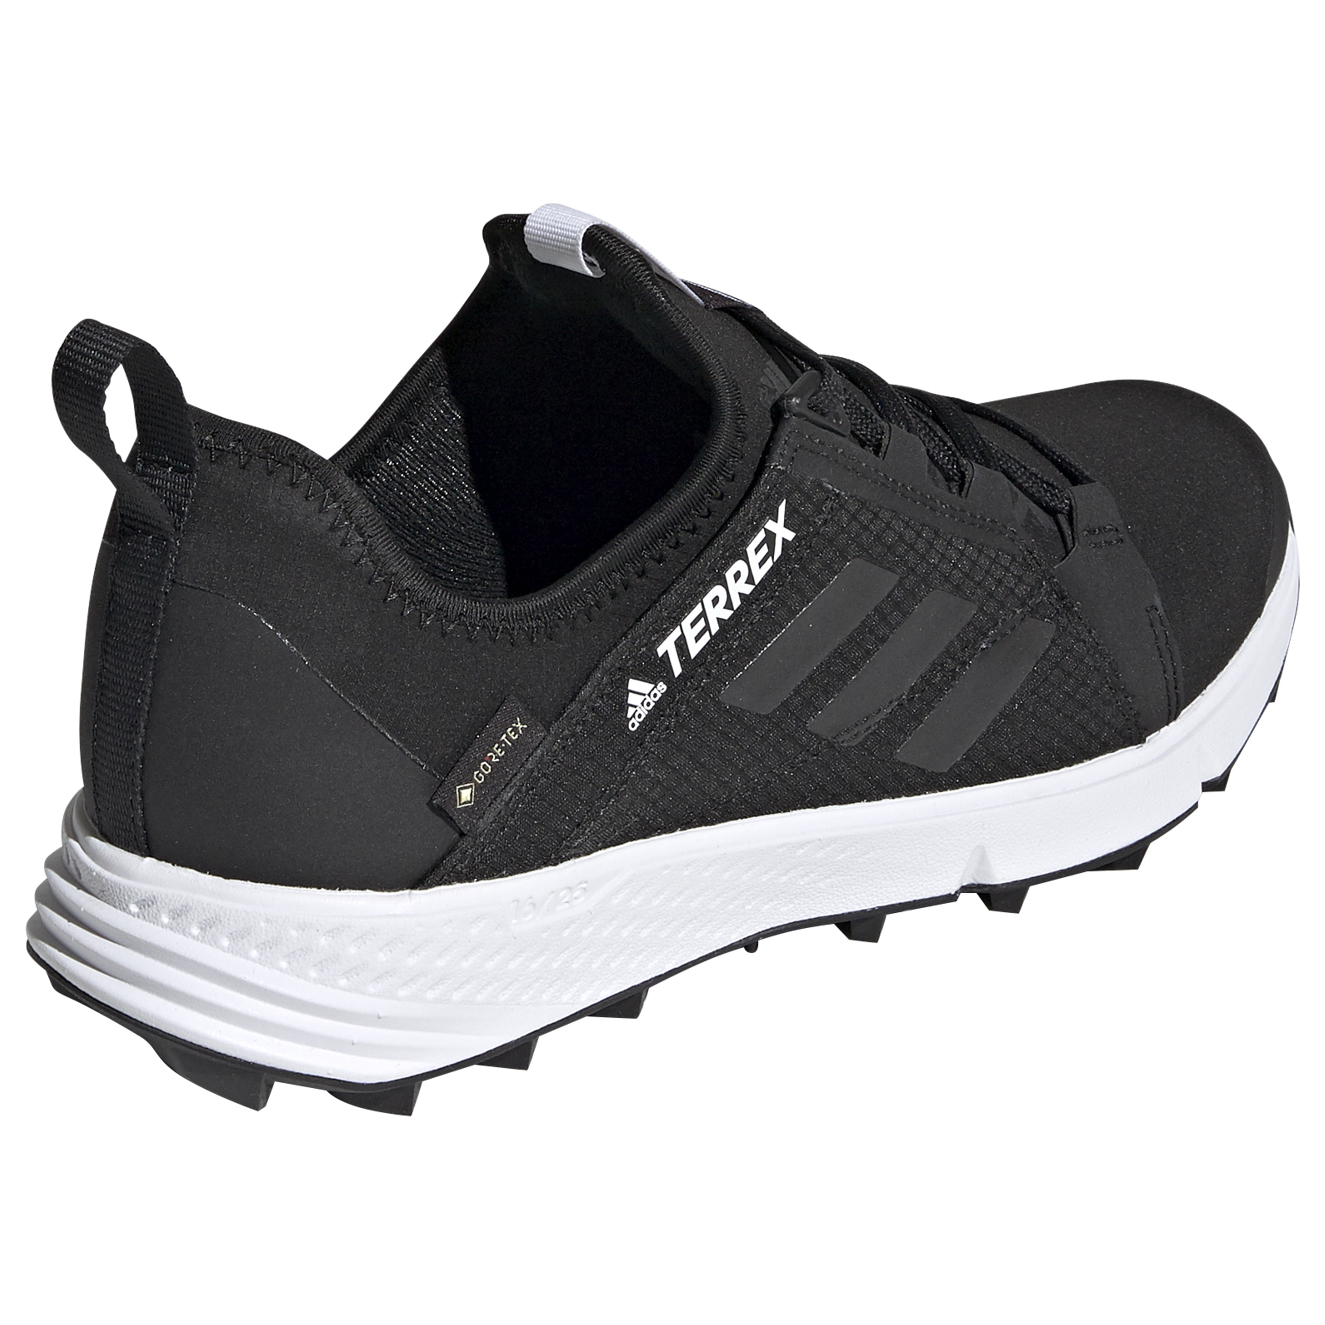 adidas - Women's Terrex Agravic Speed GTX - Trail running shoes - Core  Black / Core Black / Ftw White | 4 (UK)